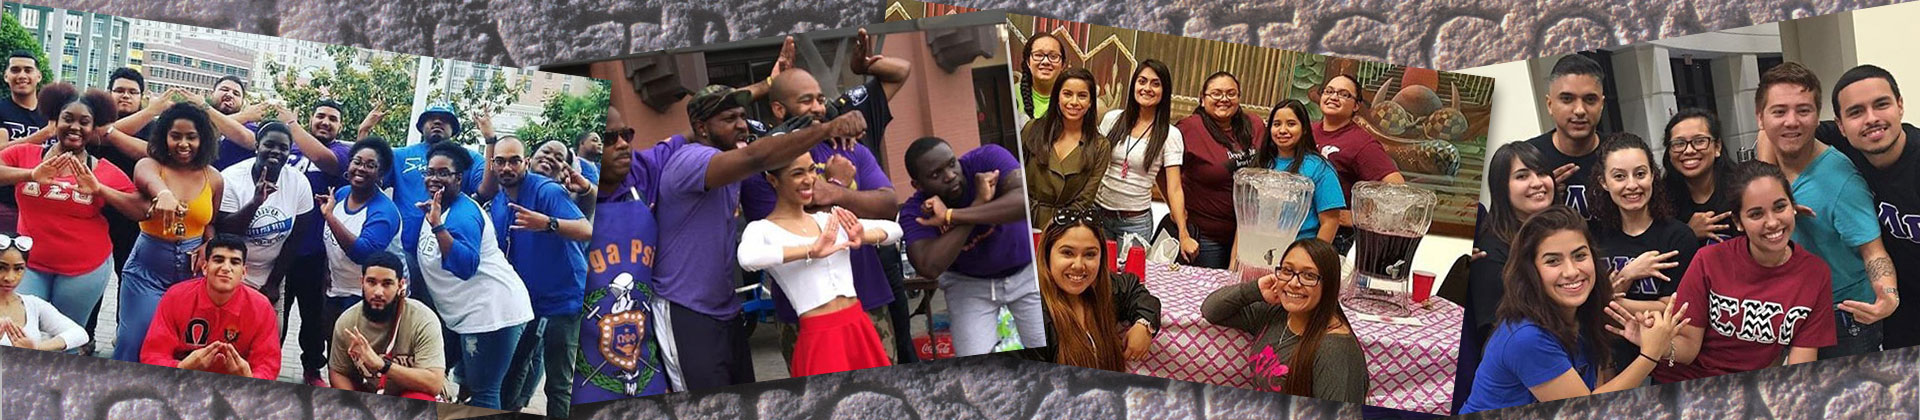 Collage of 4 images depicting various Greek organizations